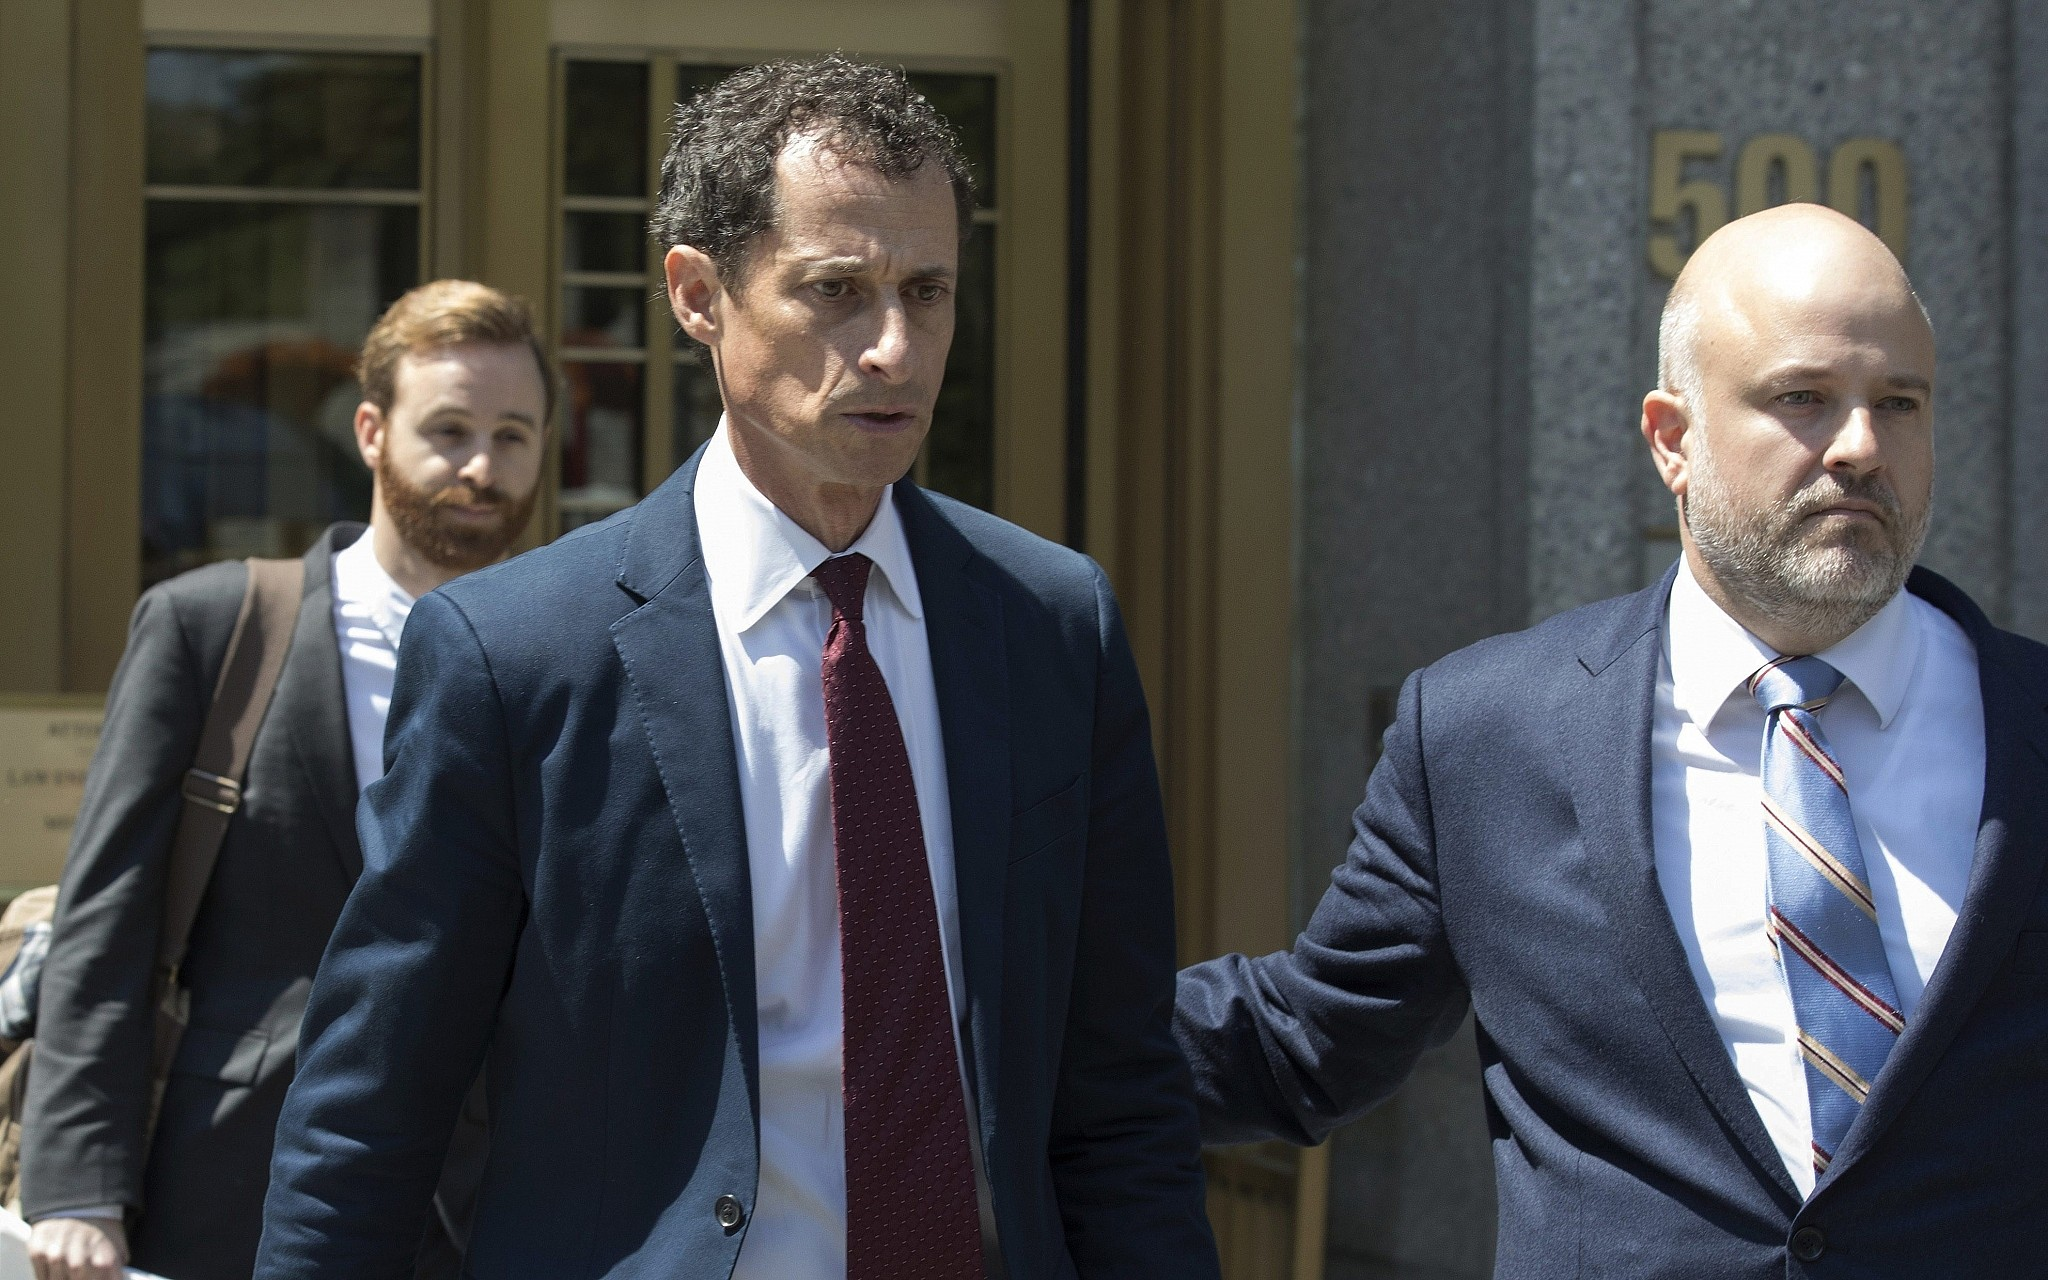 Disgraced ex-congressman Anthony Weiner jailed over sexting case